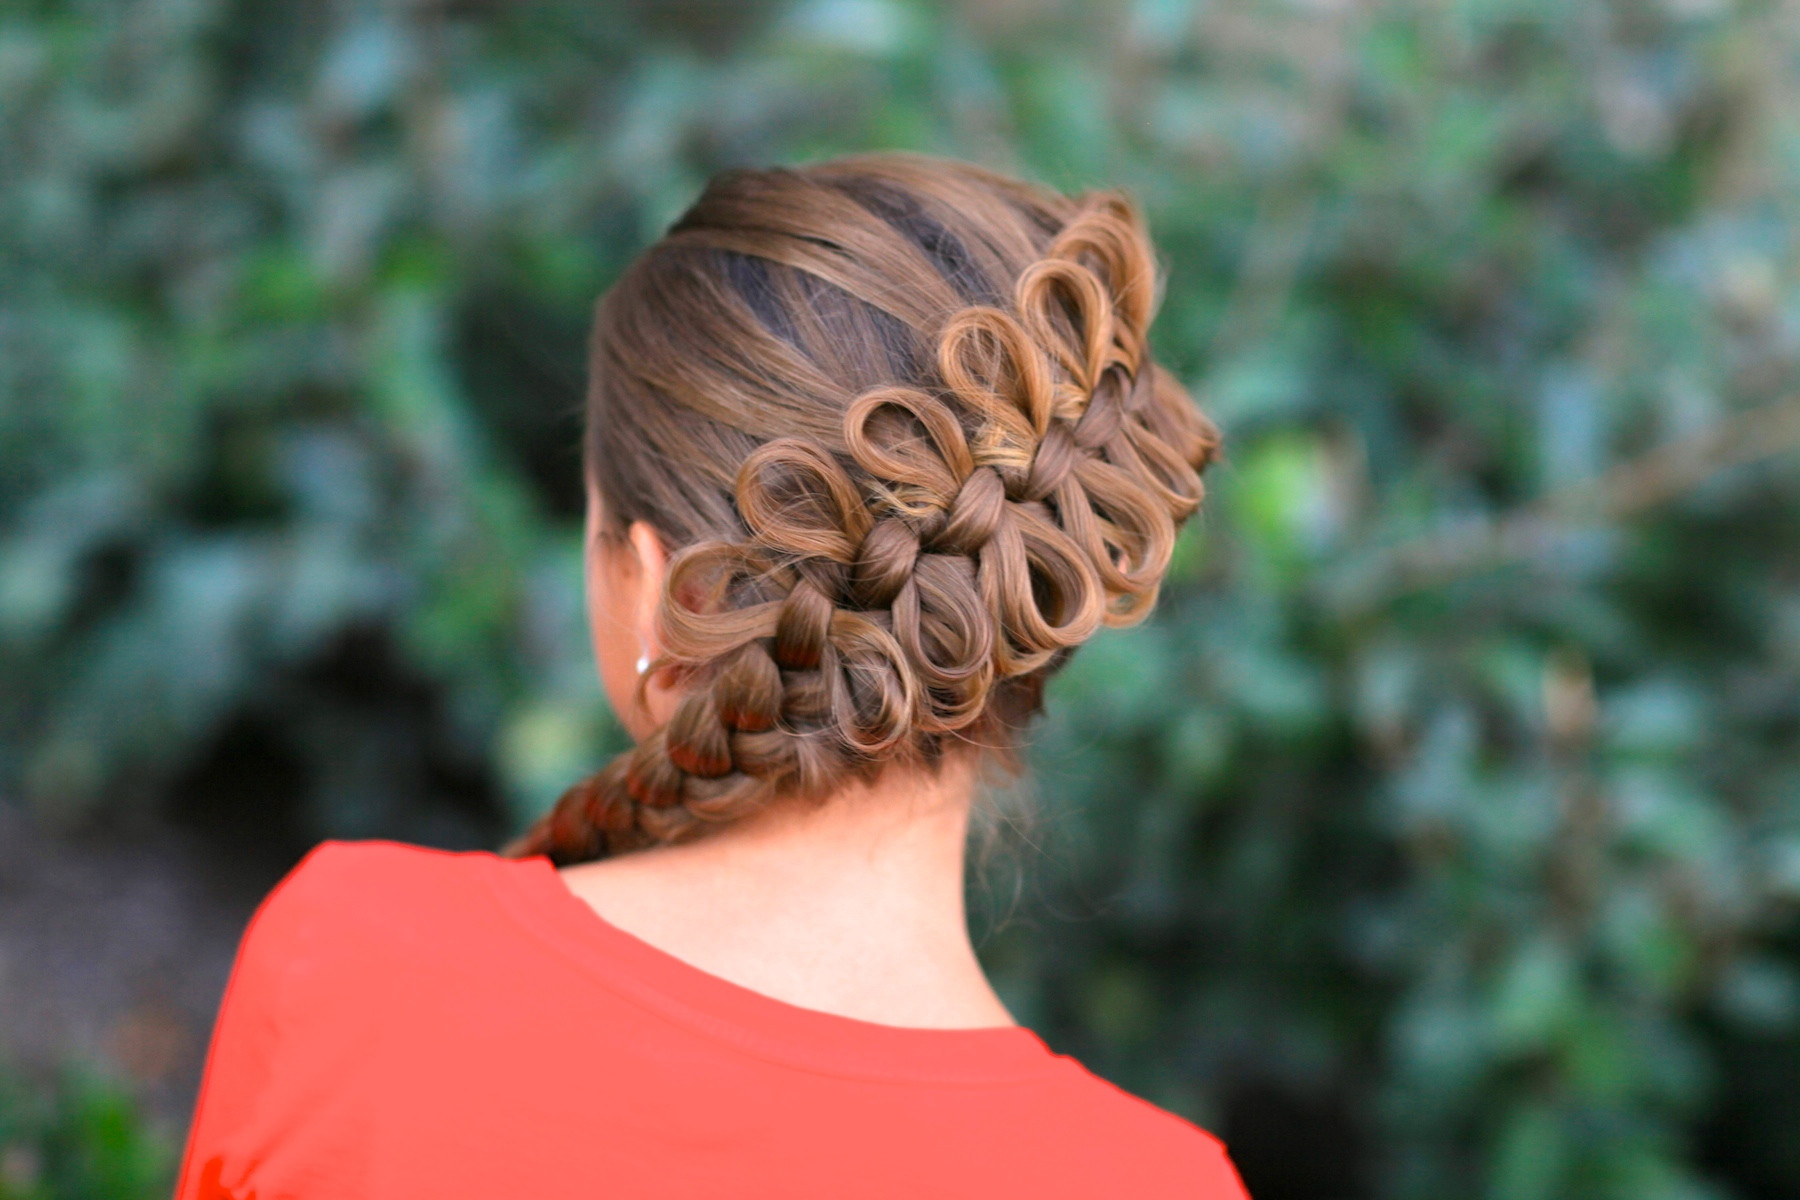 Best ideas about Cute Hairstyles With Bows . Save or Pin Diagonal Bow Braid Popular Hairstyles Now.